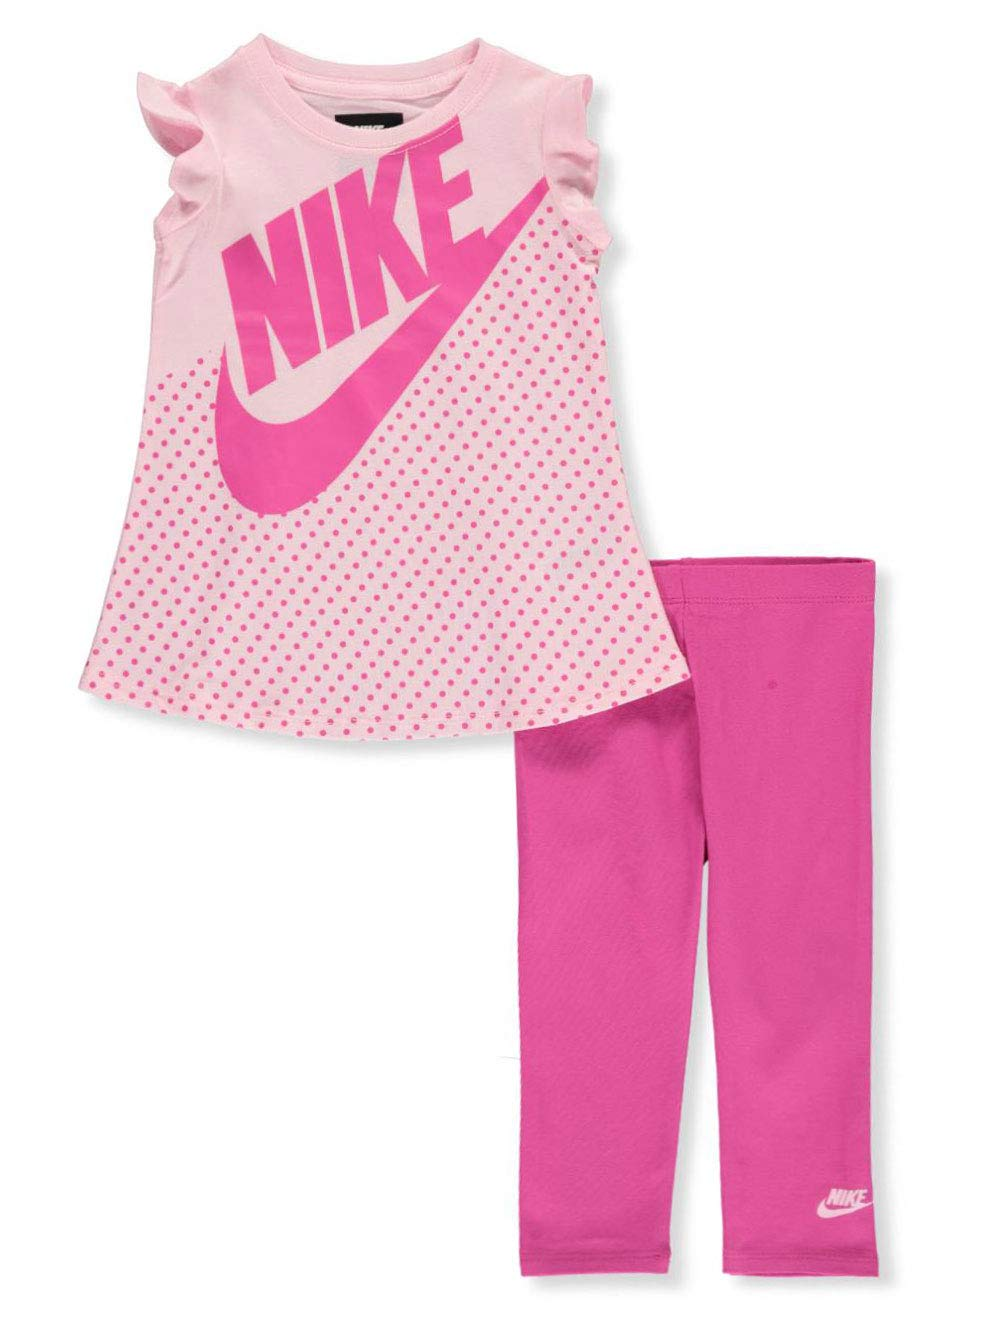 Nike Baby Girls' 2-Piece Leggings Set Outfit - Colors as Shown, 24 Months by Nike